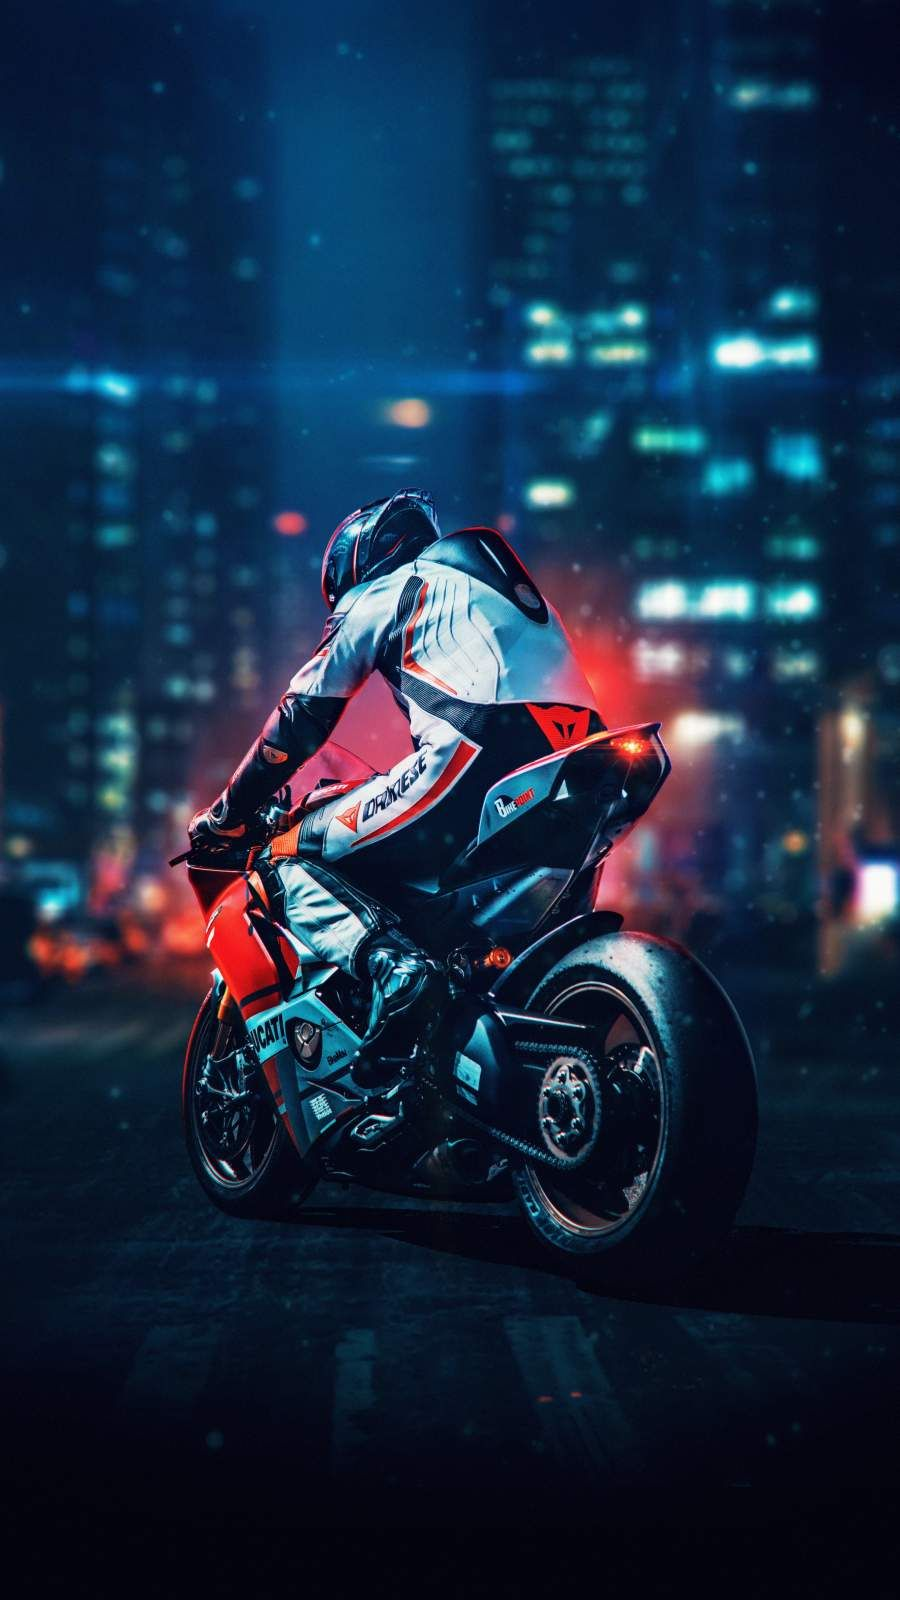 Motorcycle Rider Iphone Wallpaper Motorcycle Motorcycle